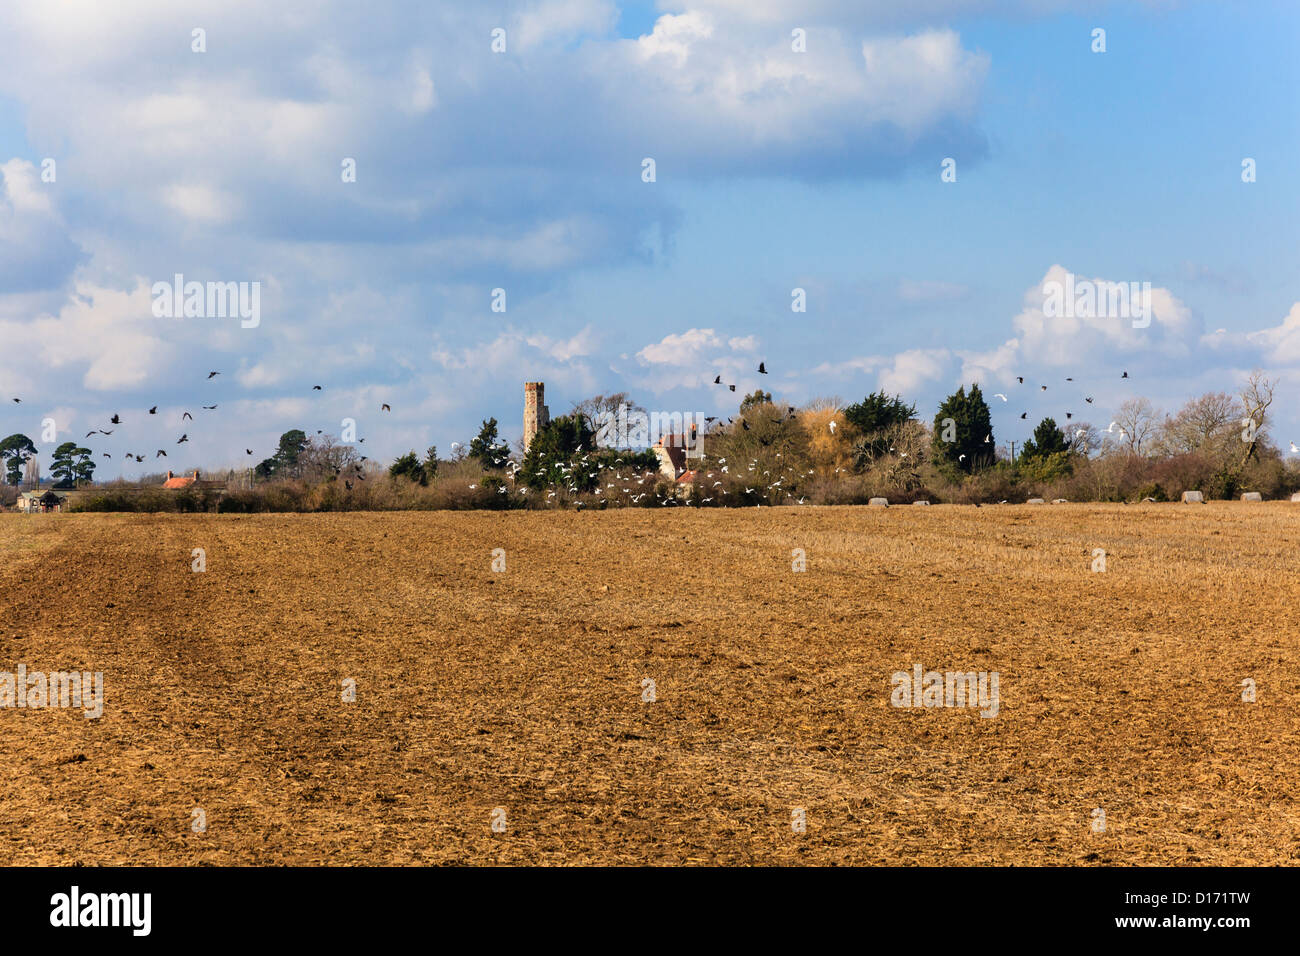 birds-take-flight-from-a-newley-tilled-field-with-the-pretty-village-D171TW.jpg?profile=RESIZE_400x